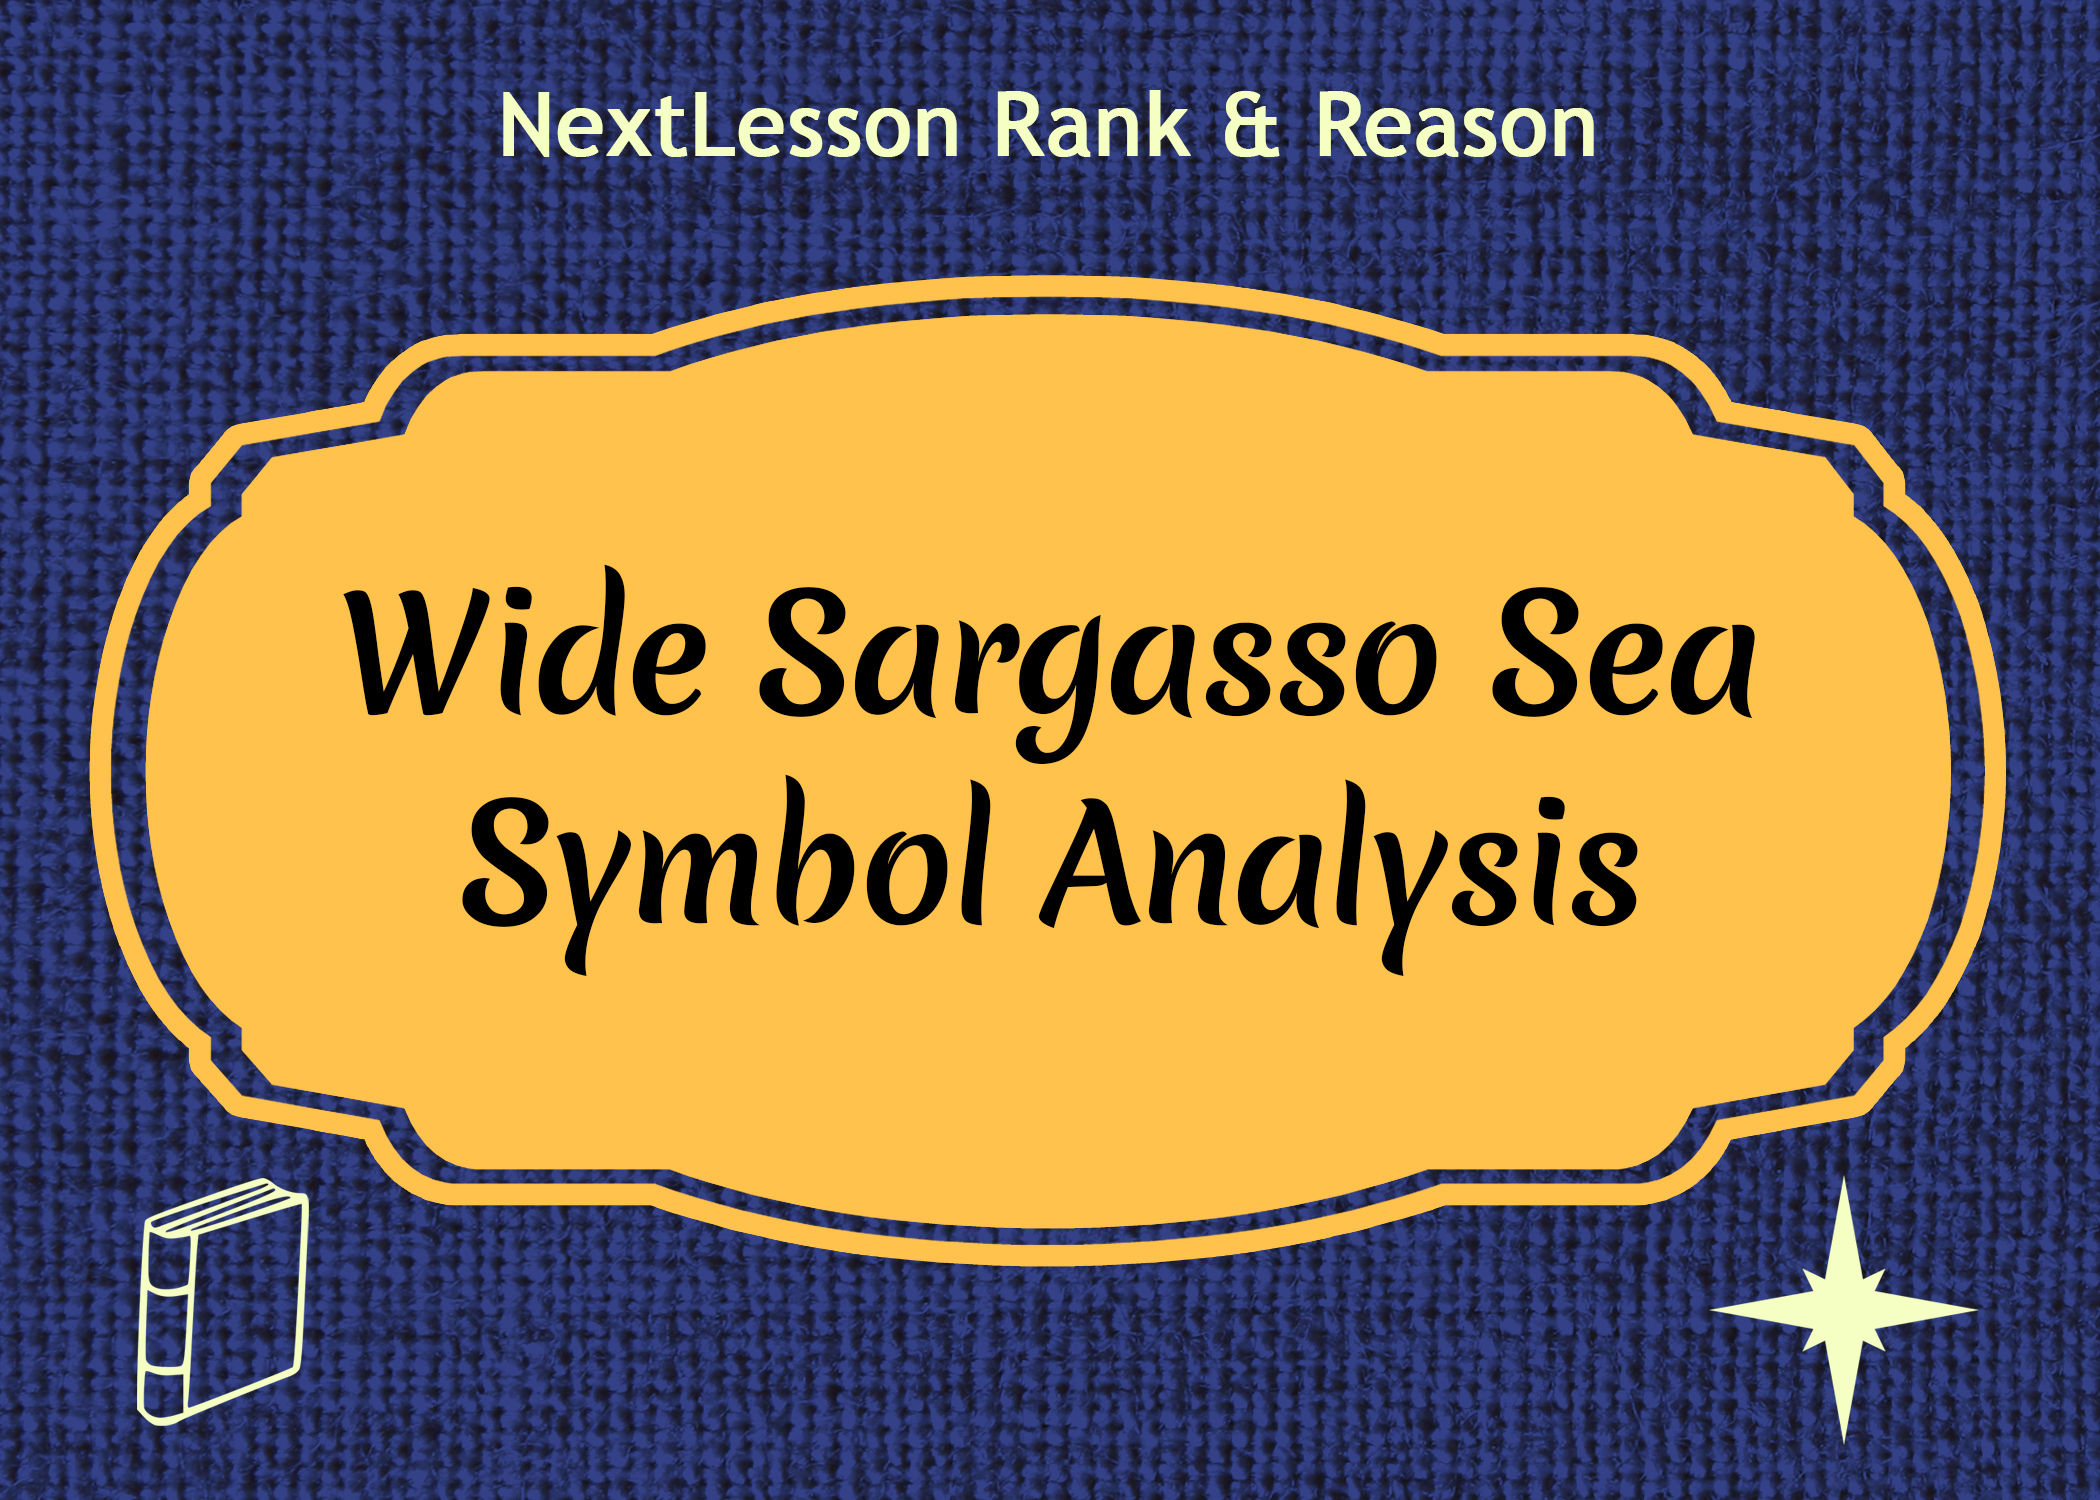 essays antoinette wide sargasso sea Wide sargasso sea the creoles in wide sargasso sea are outcasts they live with a divided identity and distance from the world after the death of antoinette's father their behavior nearly.